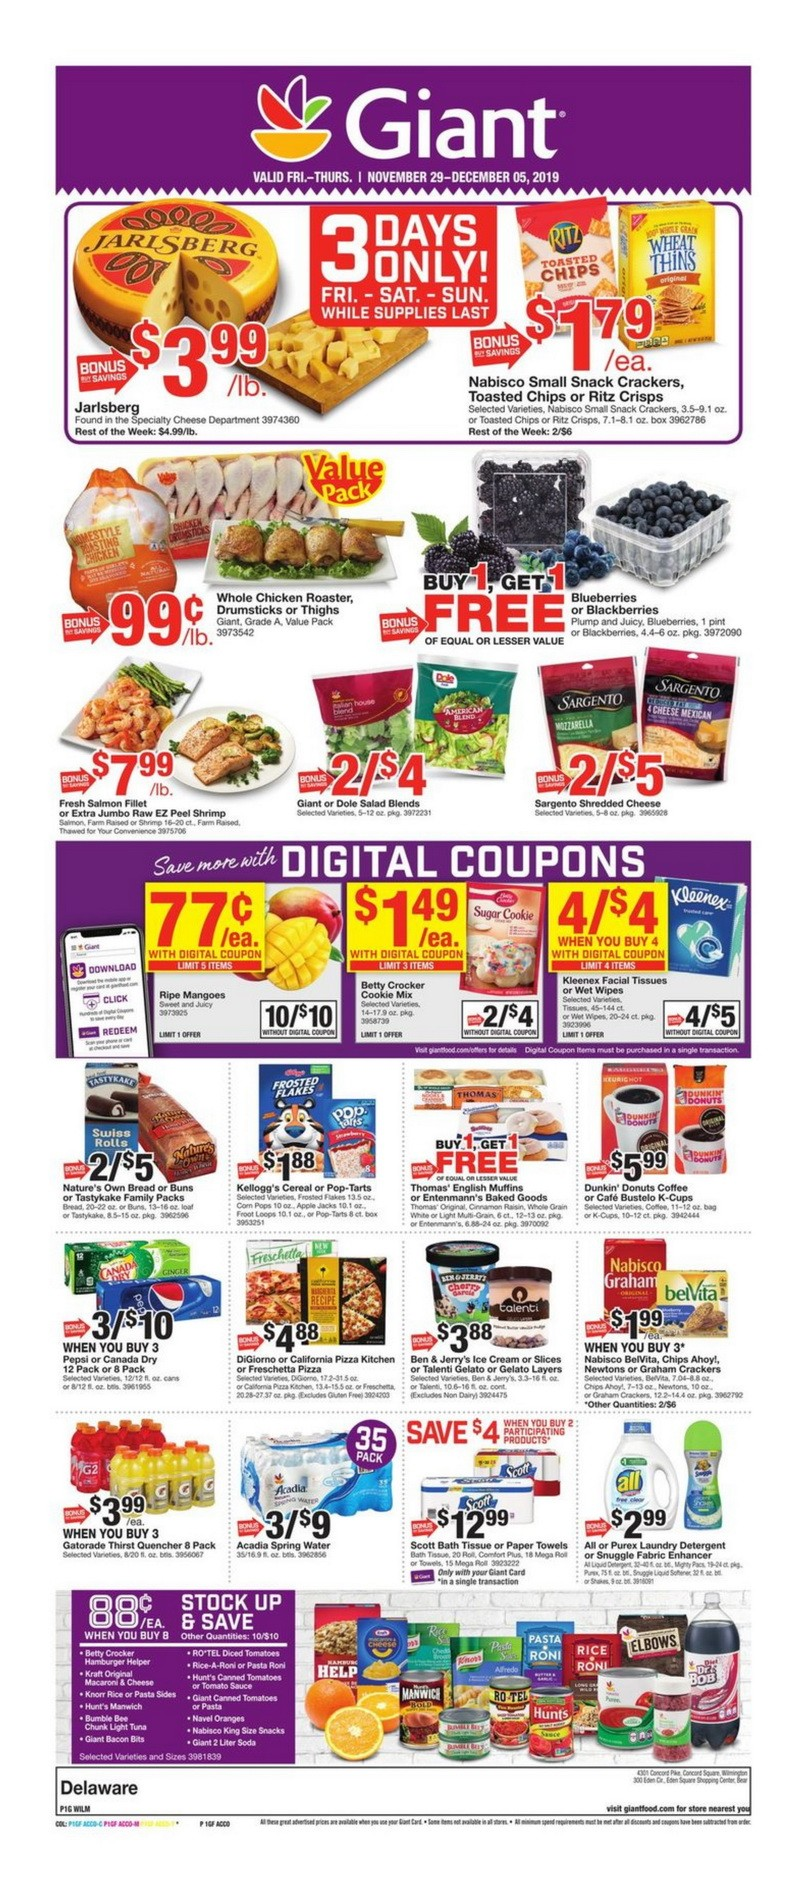 Cermak Produce Weekly Ad